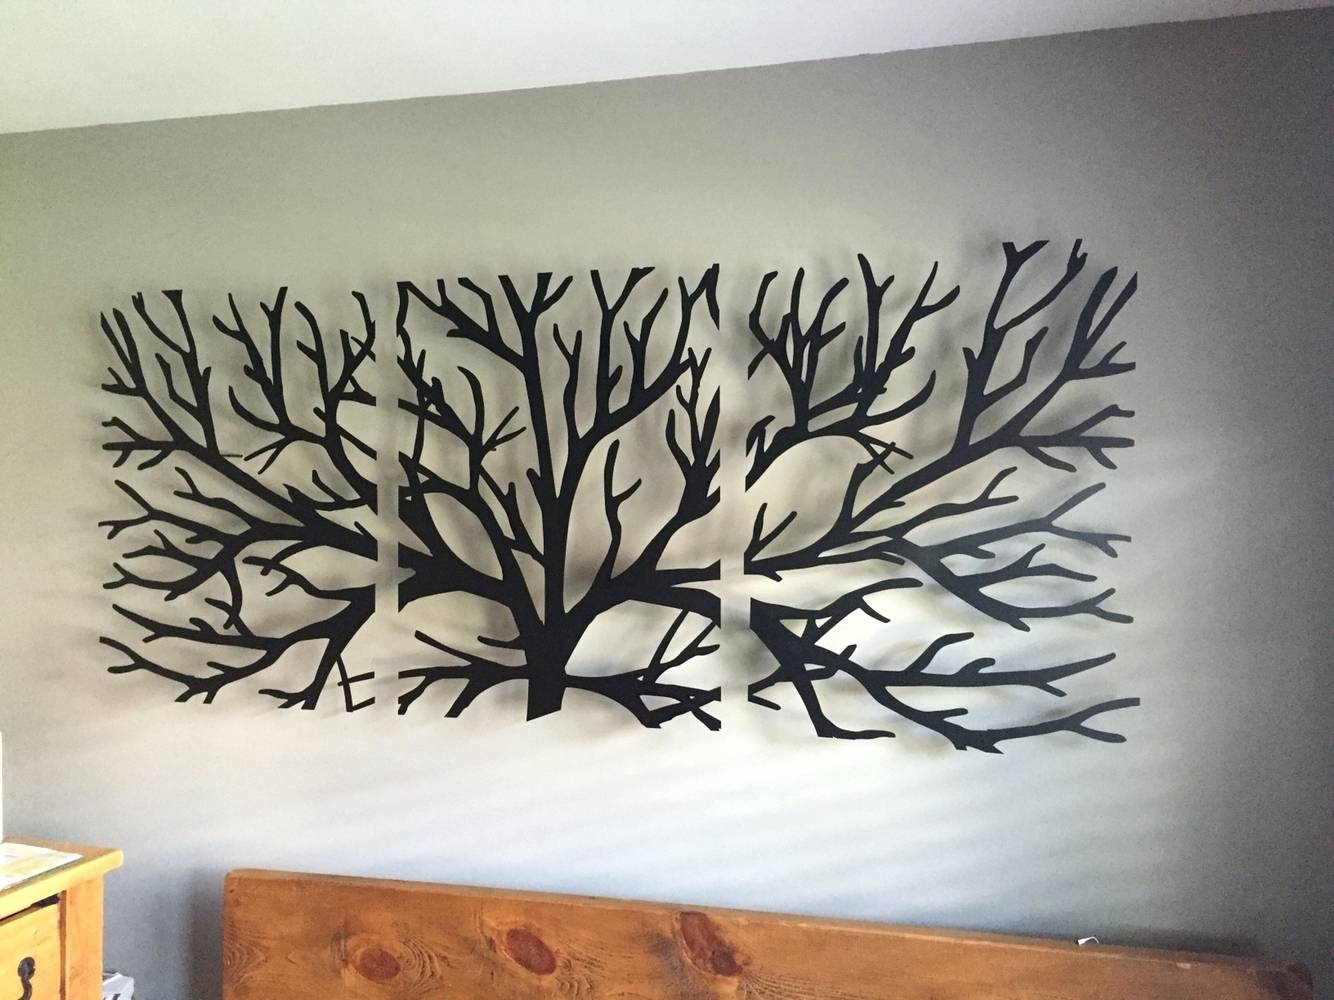 Wall Arts ~ Metal Wall Art Trees And Branches Wall Art Headboard Inside Most Up To Date Metal Wall Art Branches (View 7 of 20)